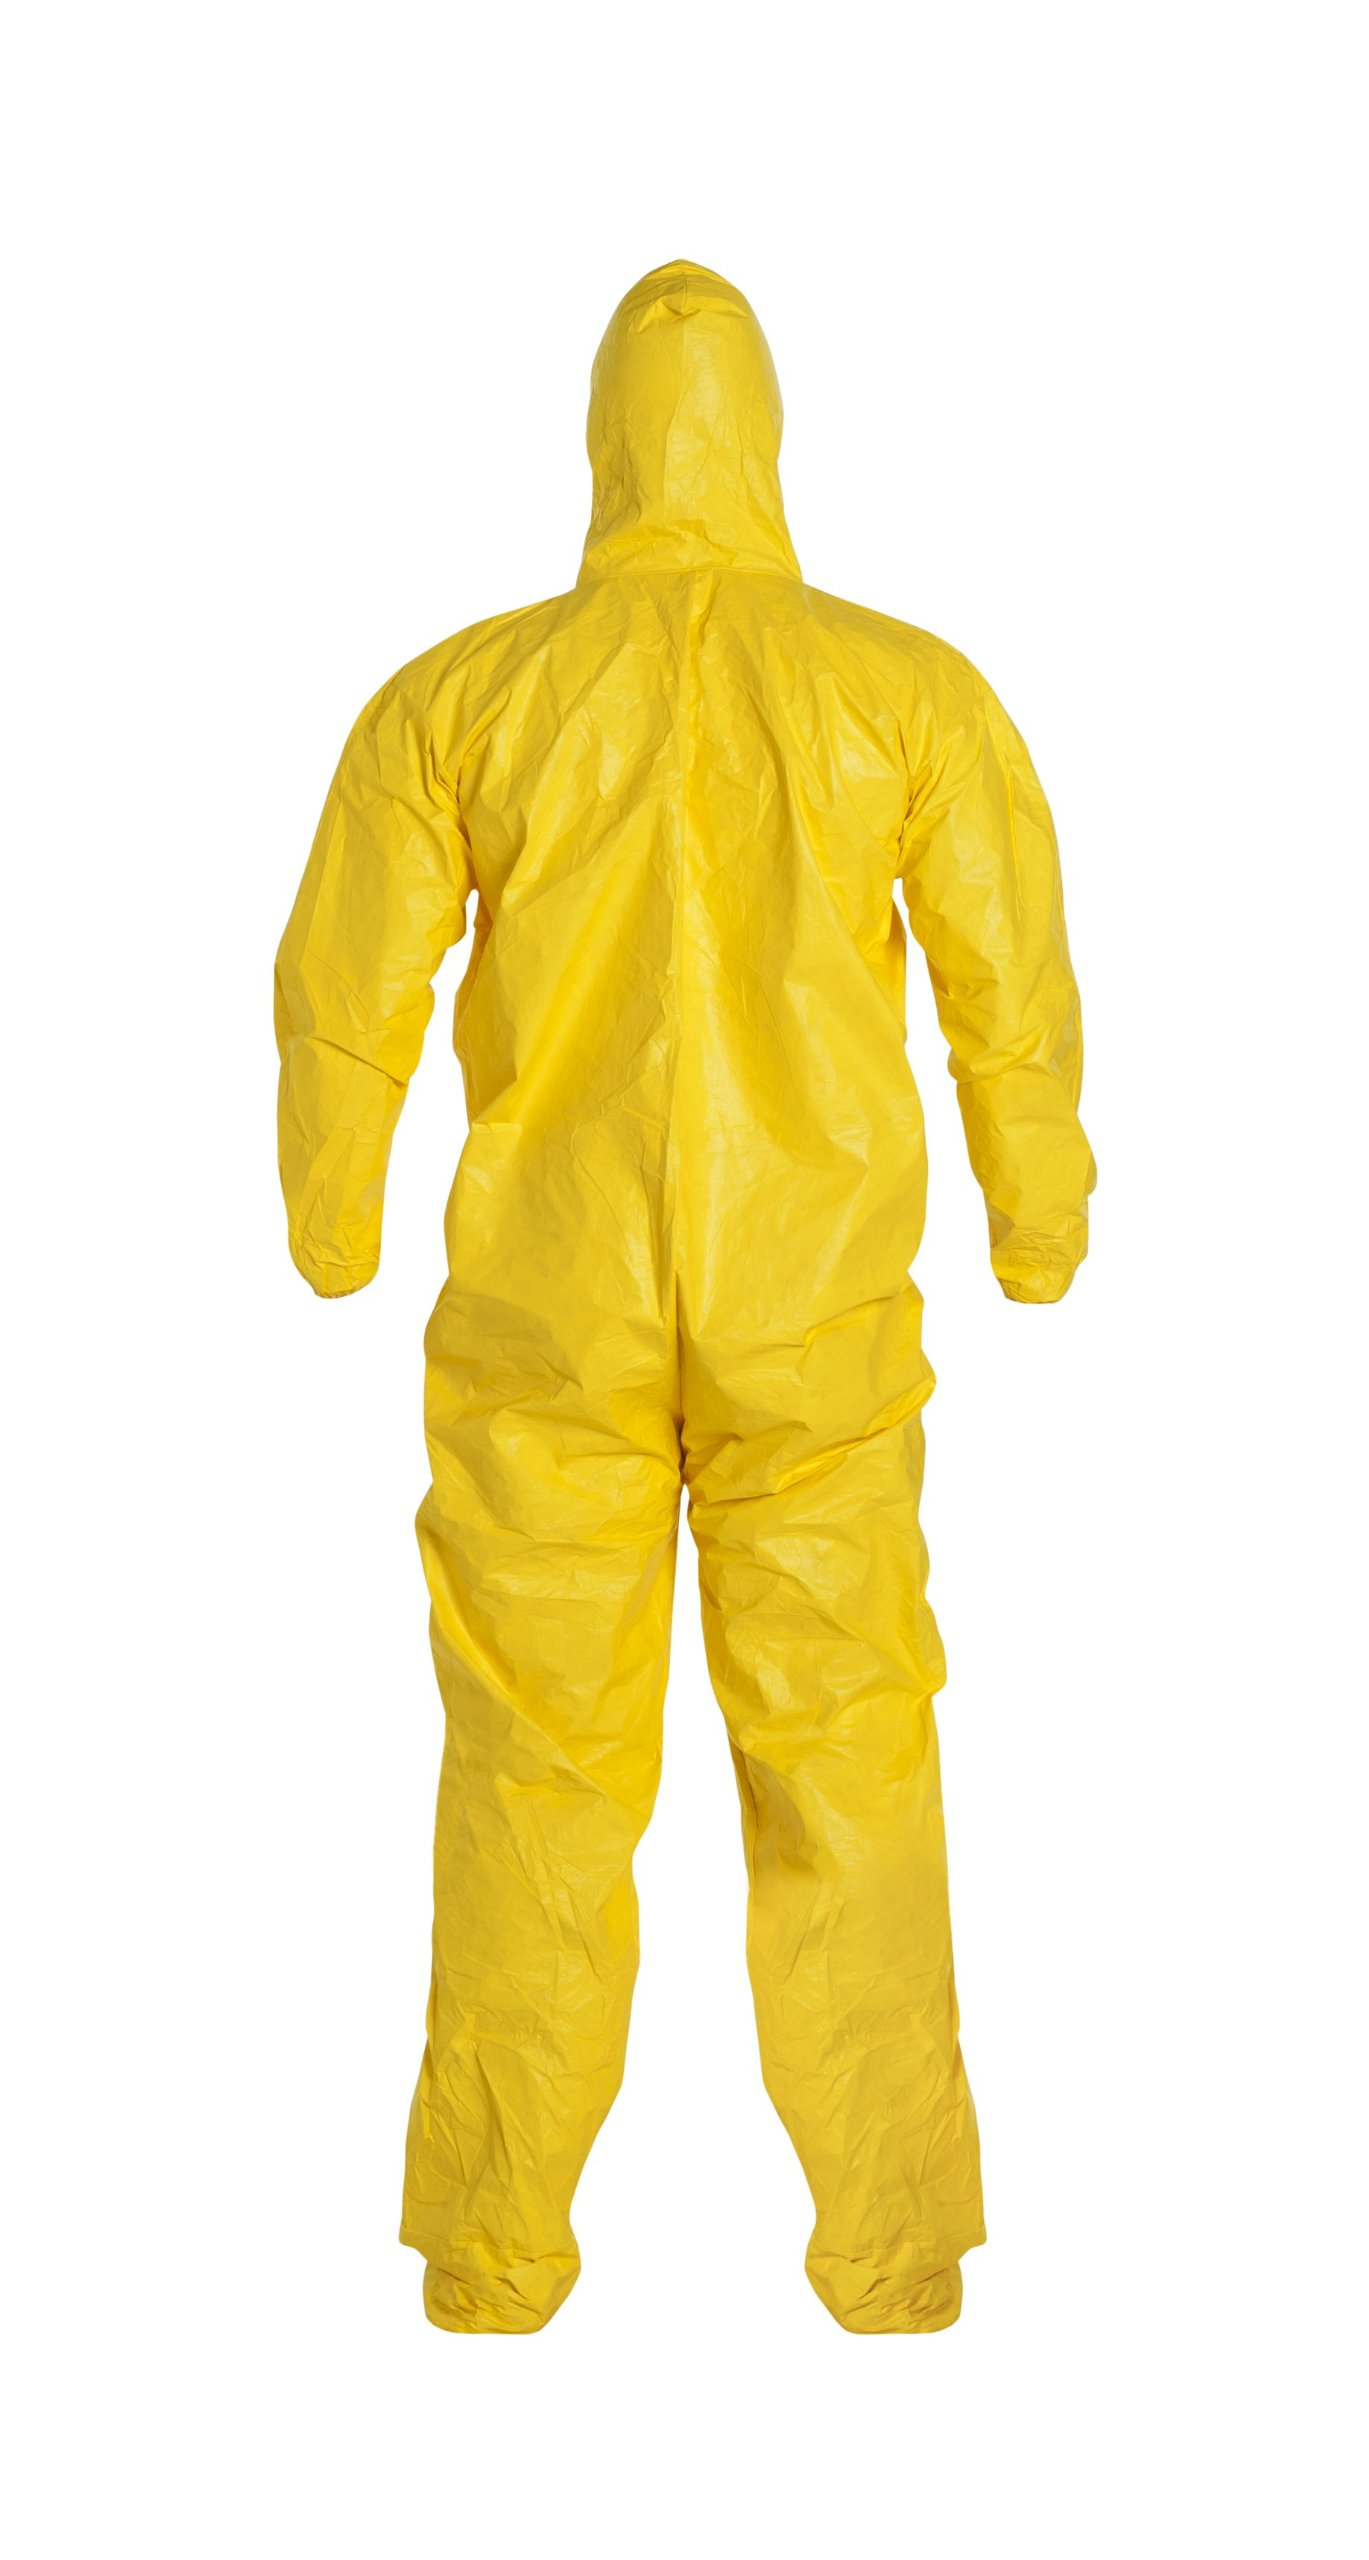 DuPont Tychem 2000 QC122S  Chemical Resistant Coverall with Hood and Socks, Disposable, Elastic Cuff, Yellow, X-Large (Pack of 12) by DuPont